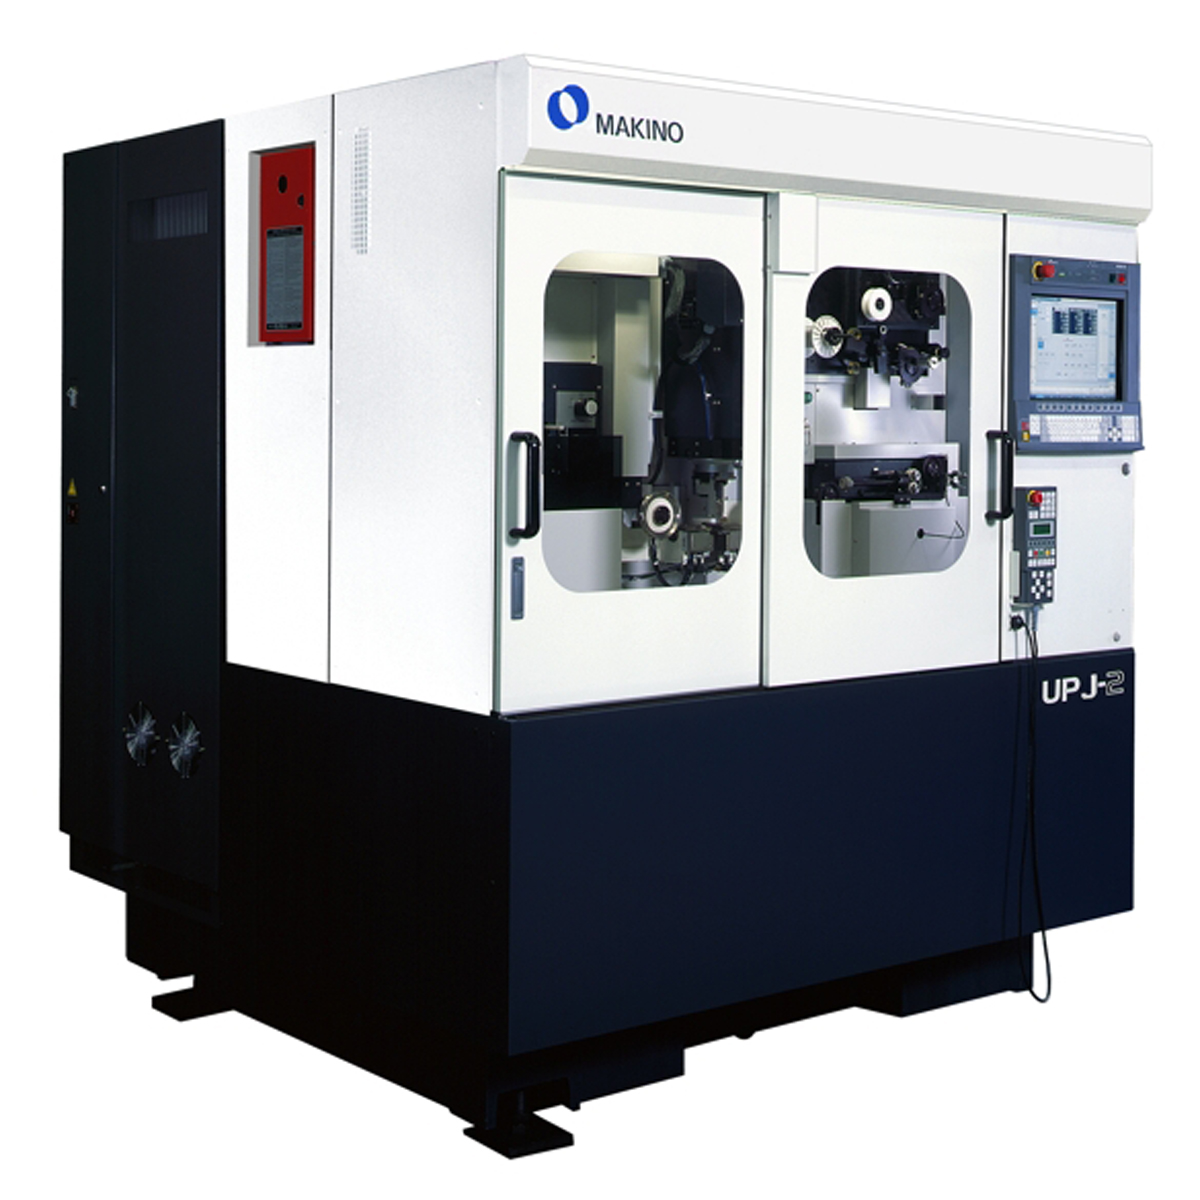 makino edm machine